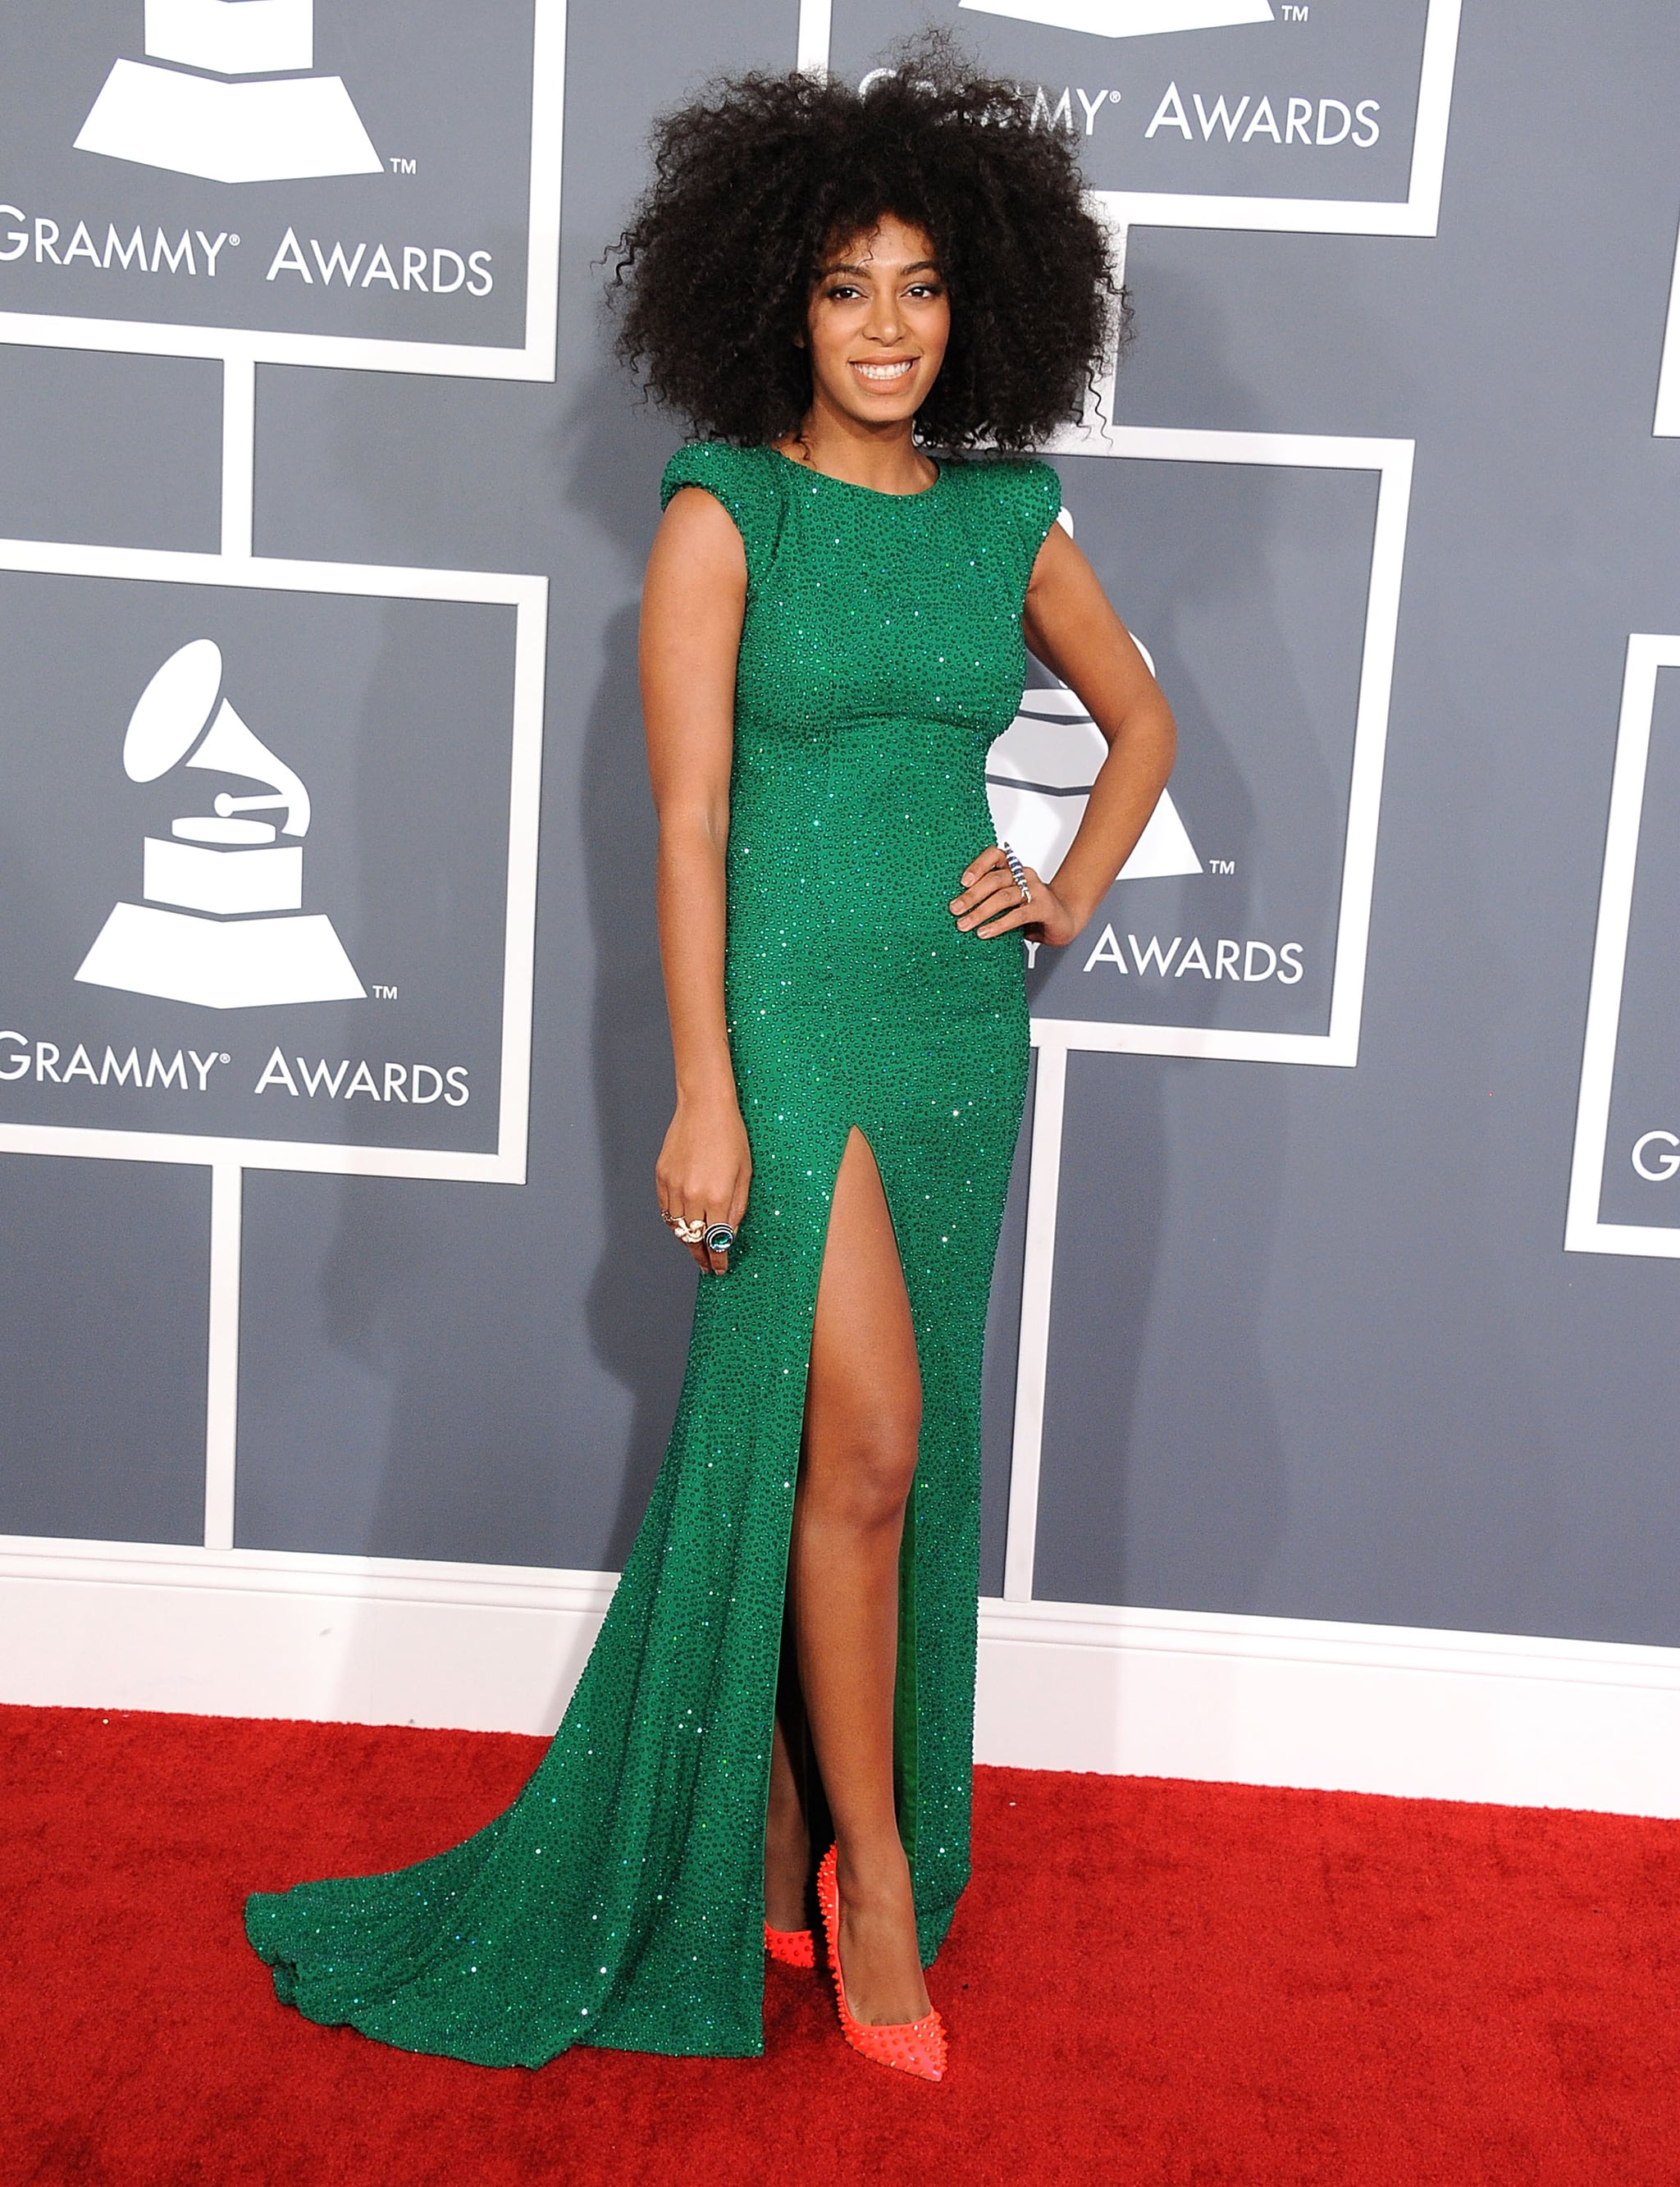 ¿Cuánto mide Solange Knowles? - Real height Solange-hit-2012-Grammy-Awards-red-carpet-shimmering-emerald